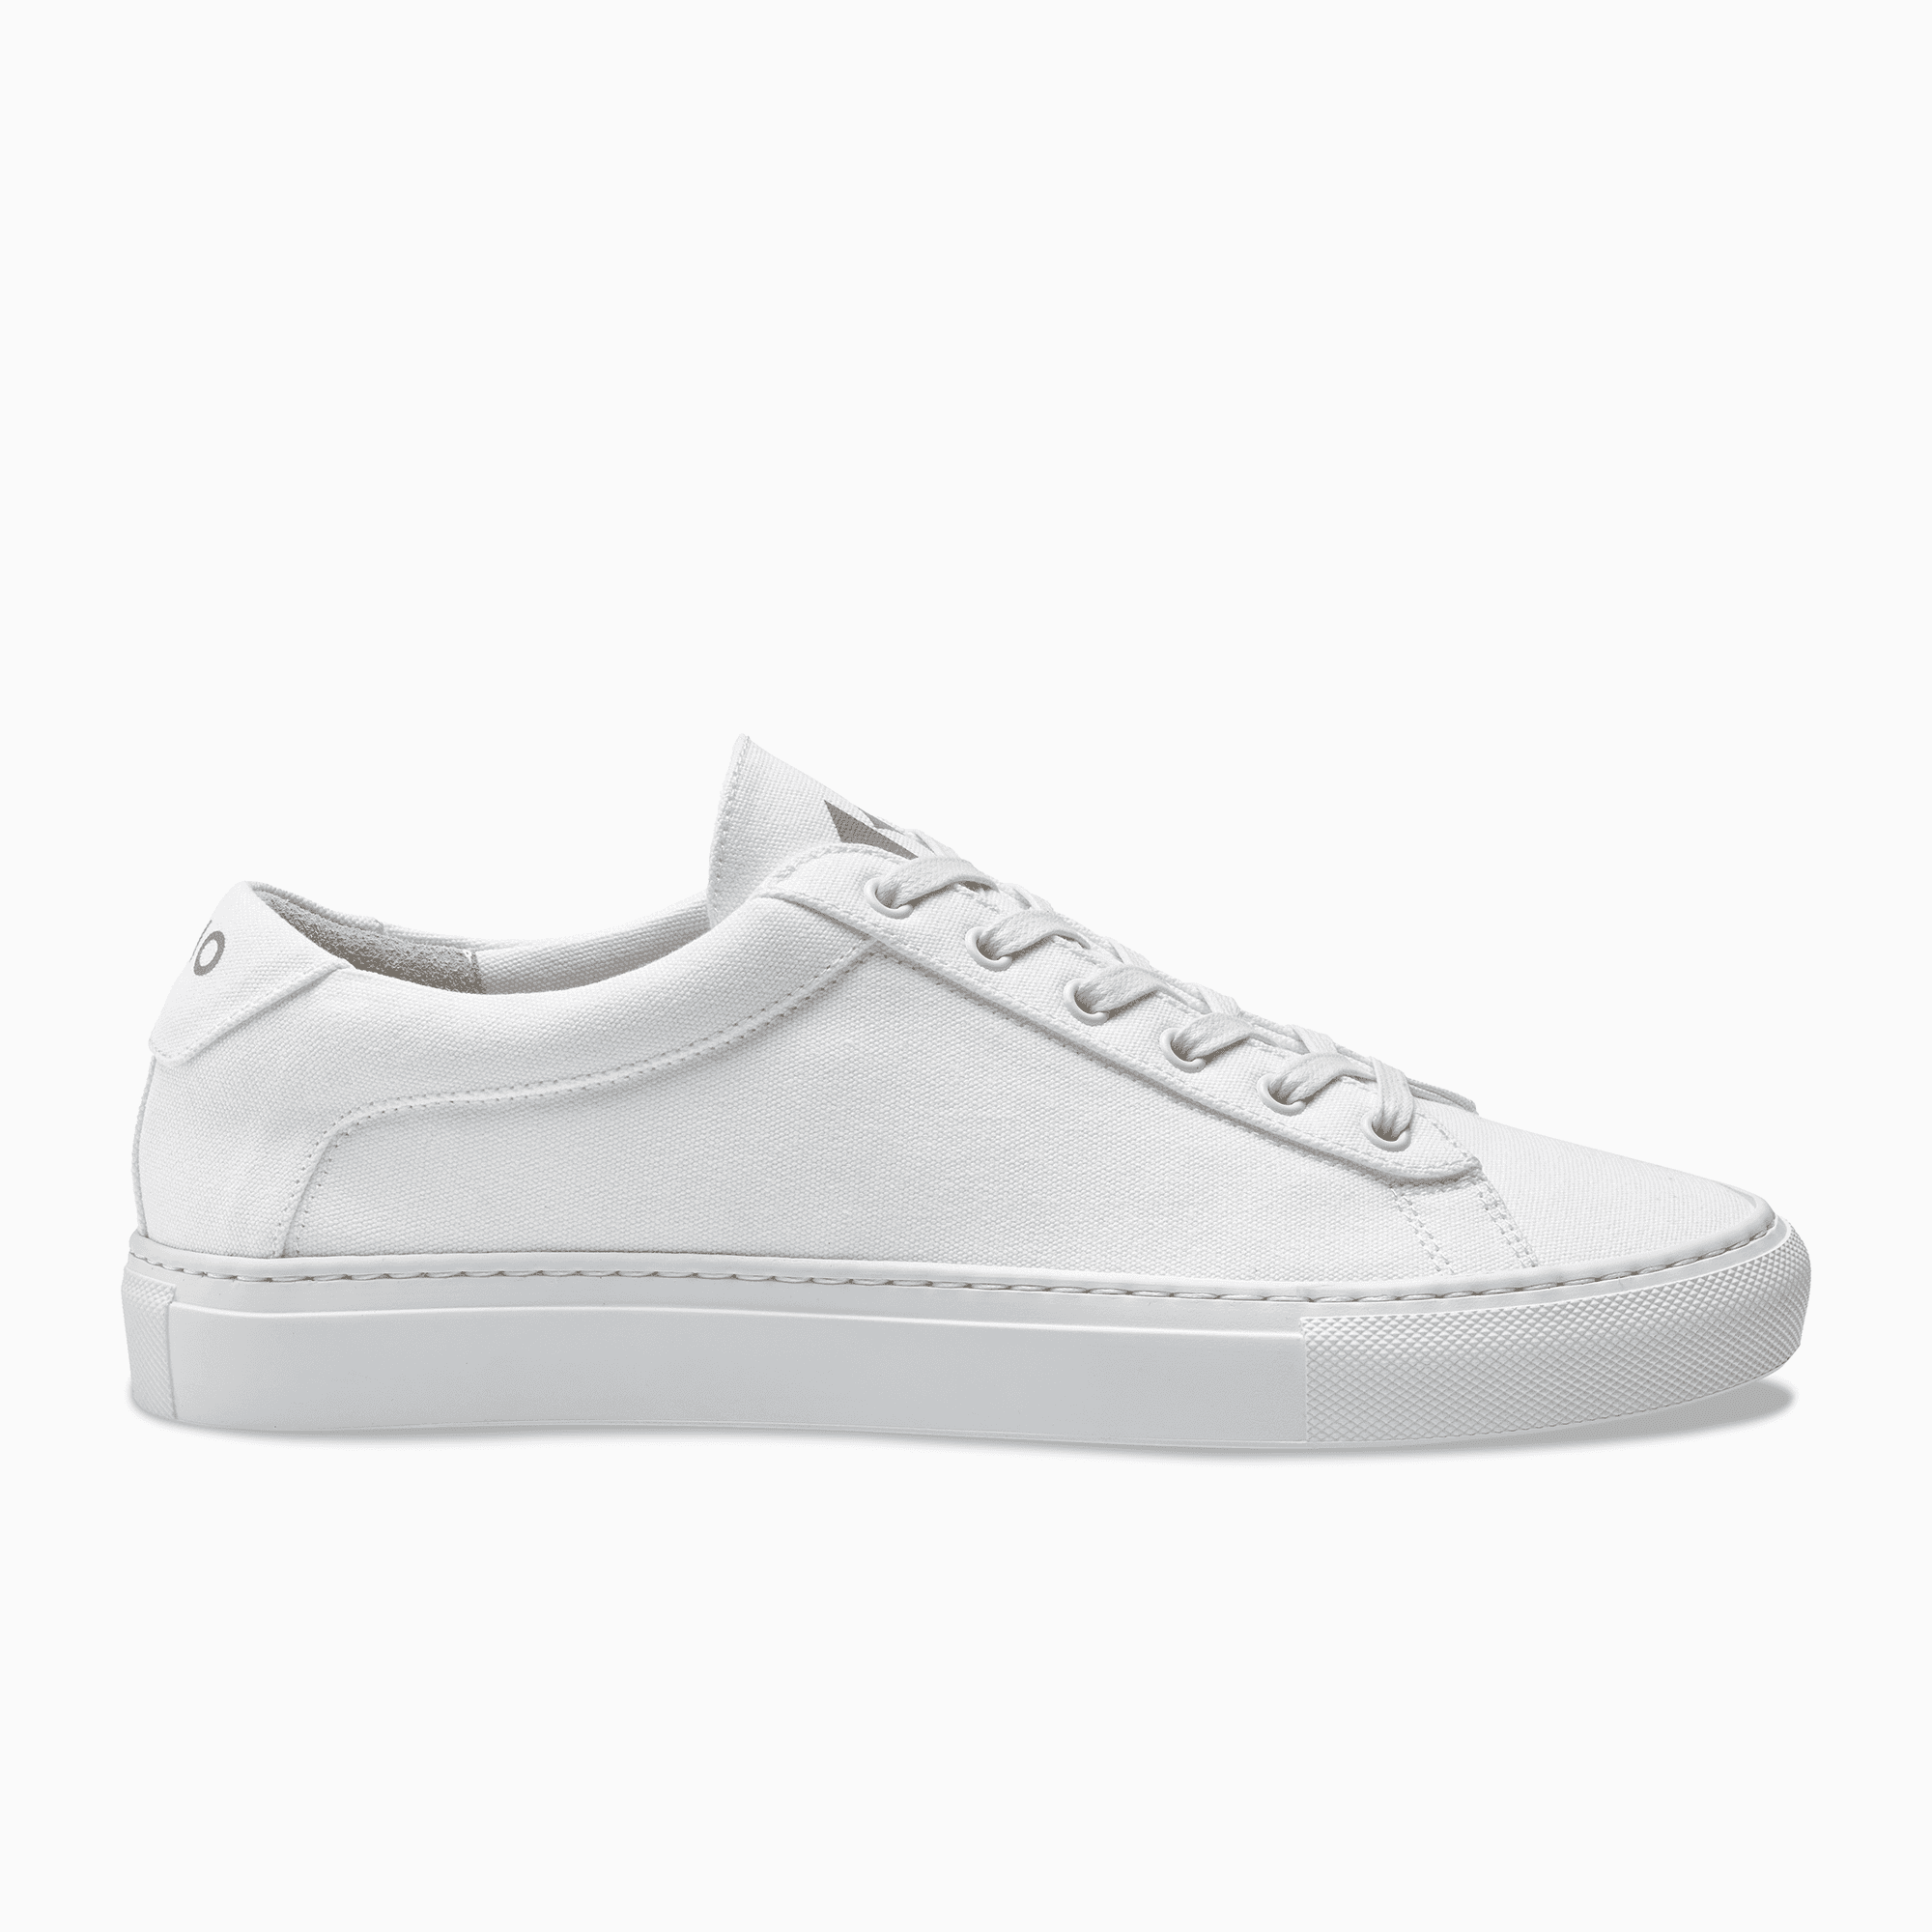 Women's White Canvas Sneakers | Capri Bianco Canvas | KOIO